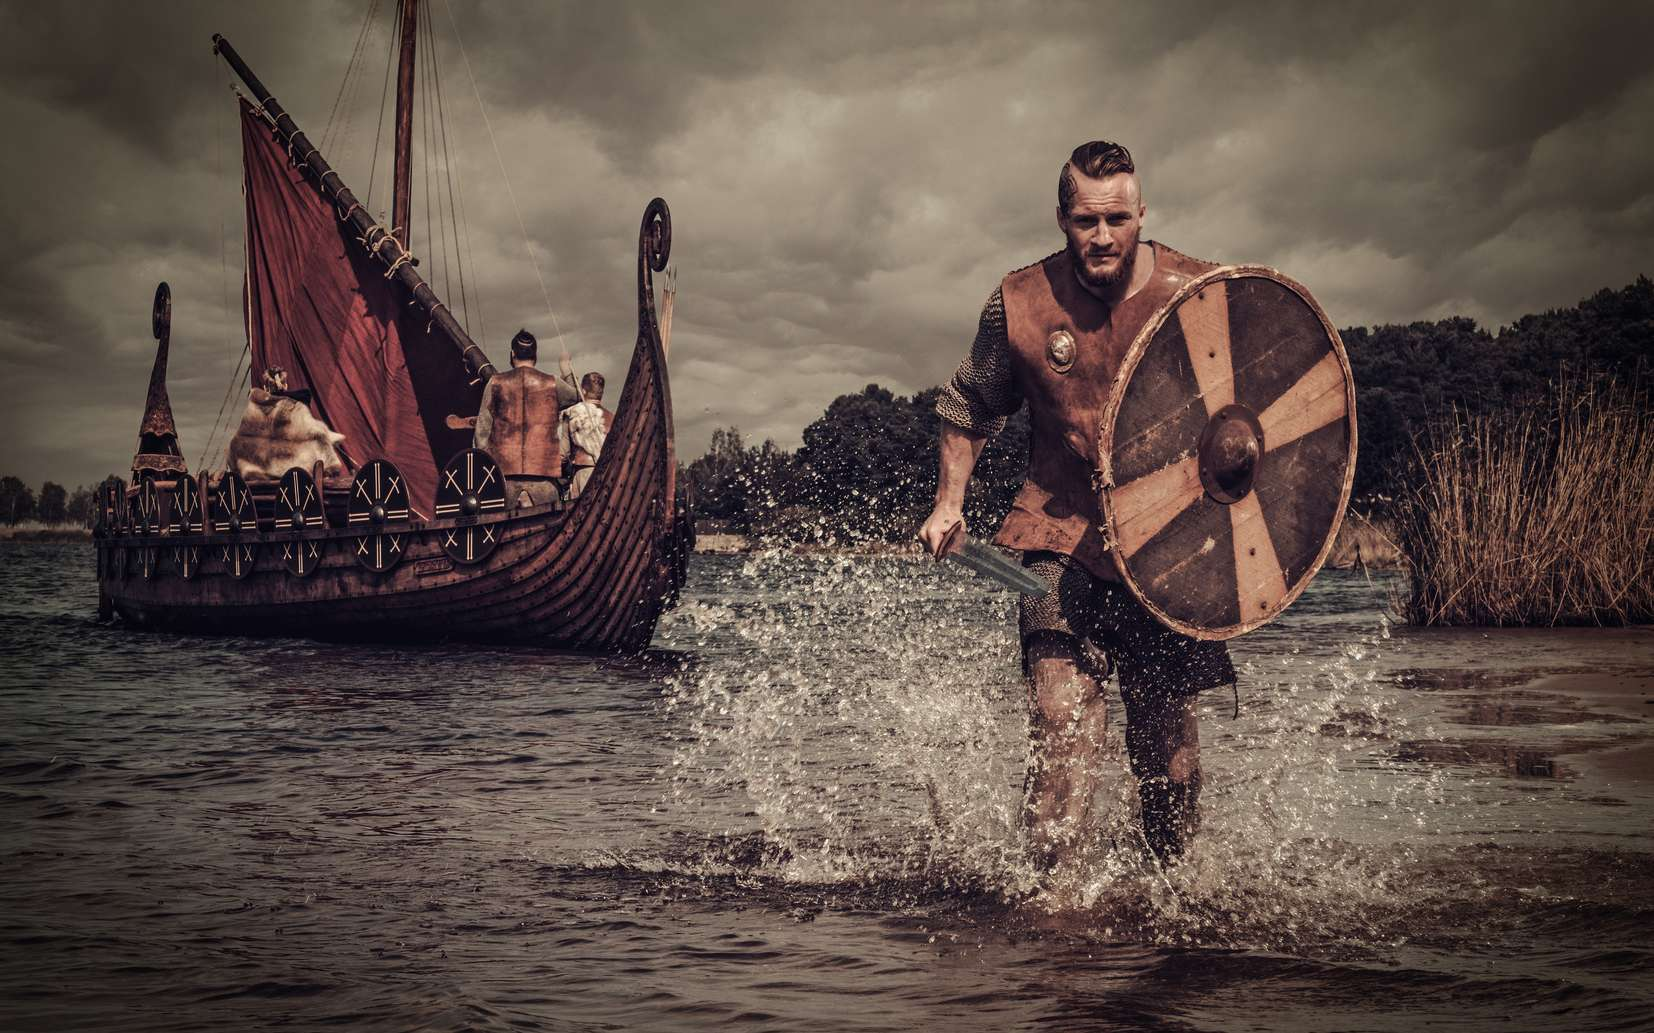 La Normandie doit son nom aux Vikings. © Nejron Photo, fotolia